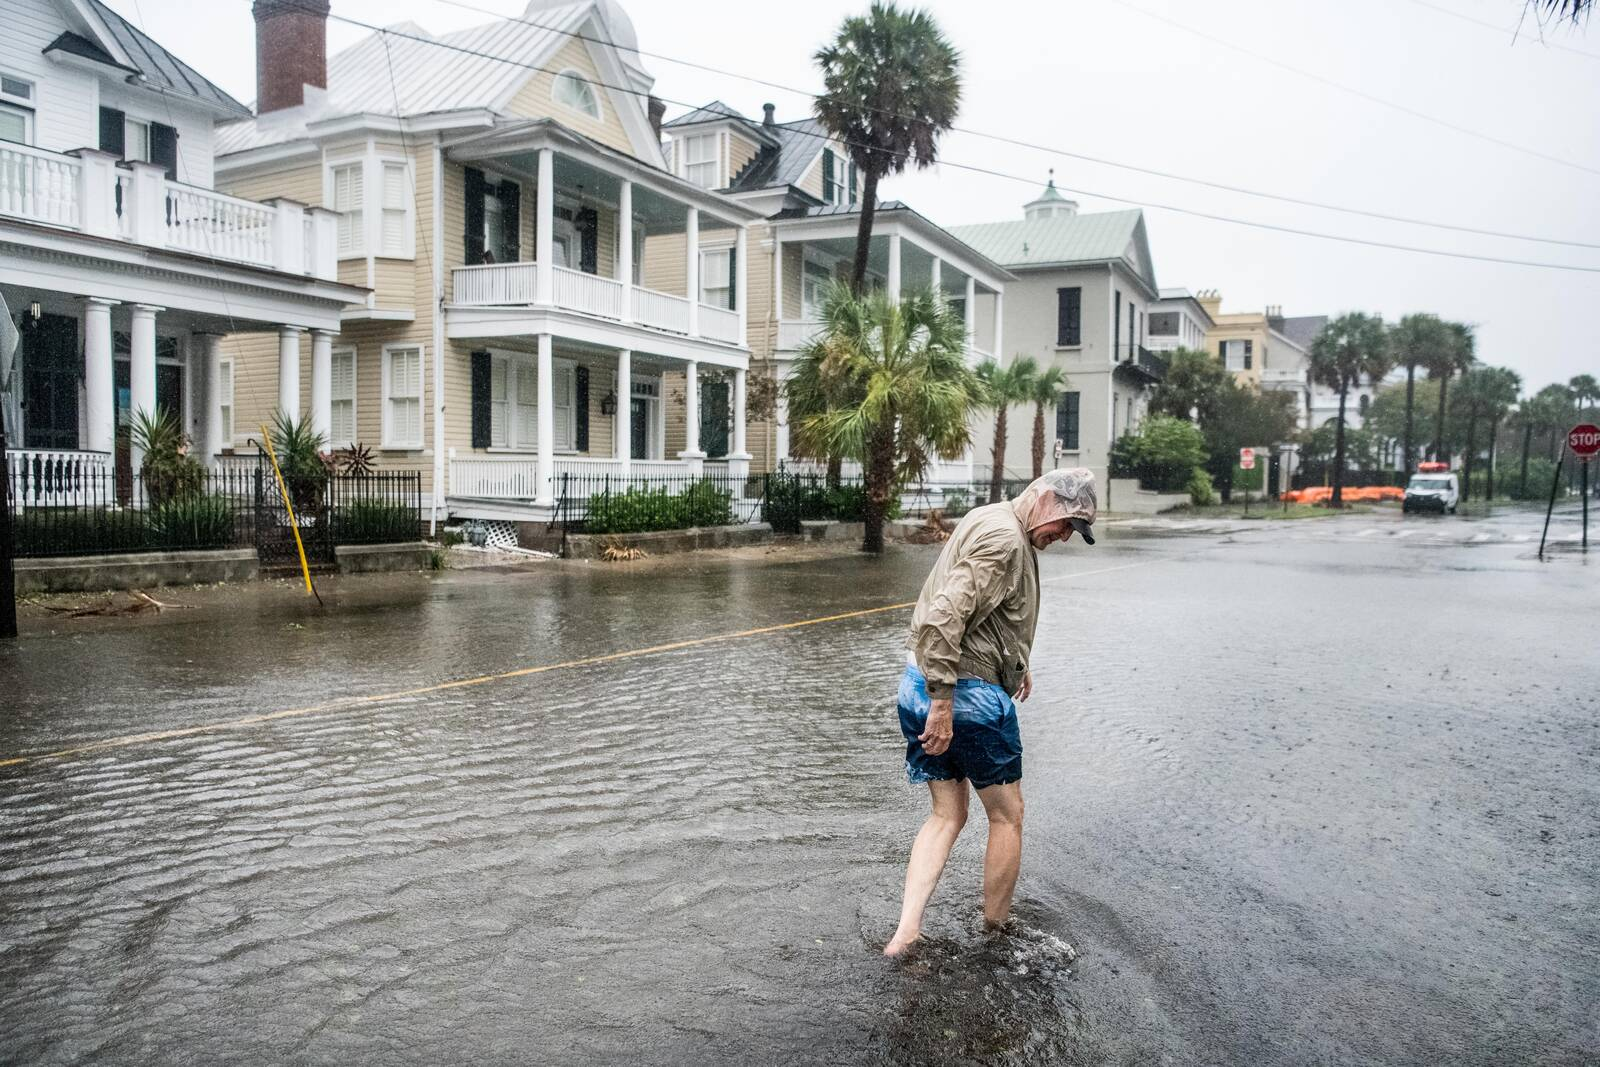 Bill Olesner walks down South Battery St. while cleaning debris from storm drains on Sept. 5, 2019 in Charleston, South Carolina. Credit: Sean Rayford/Getty Images